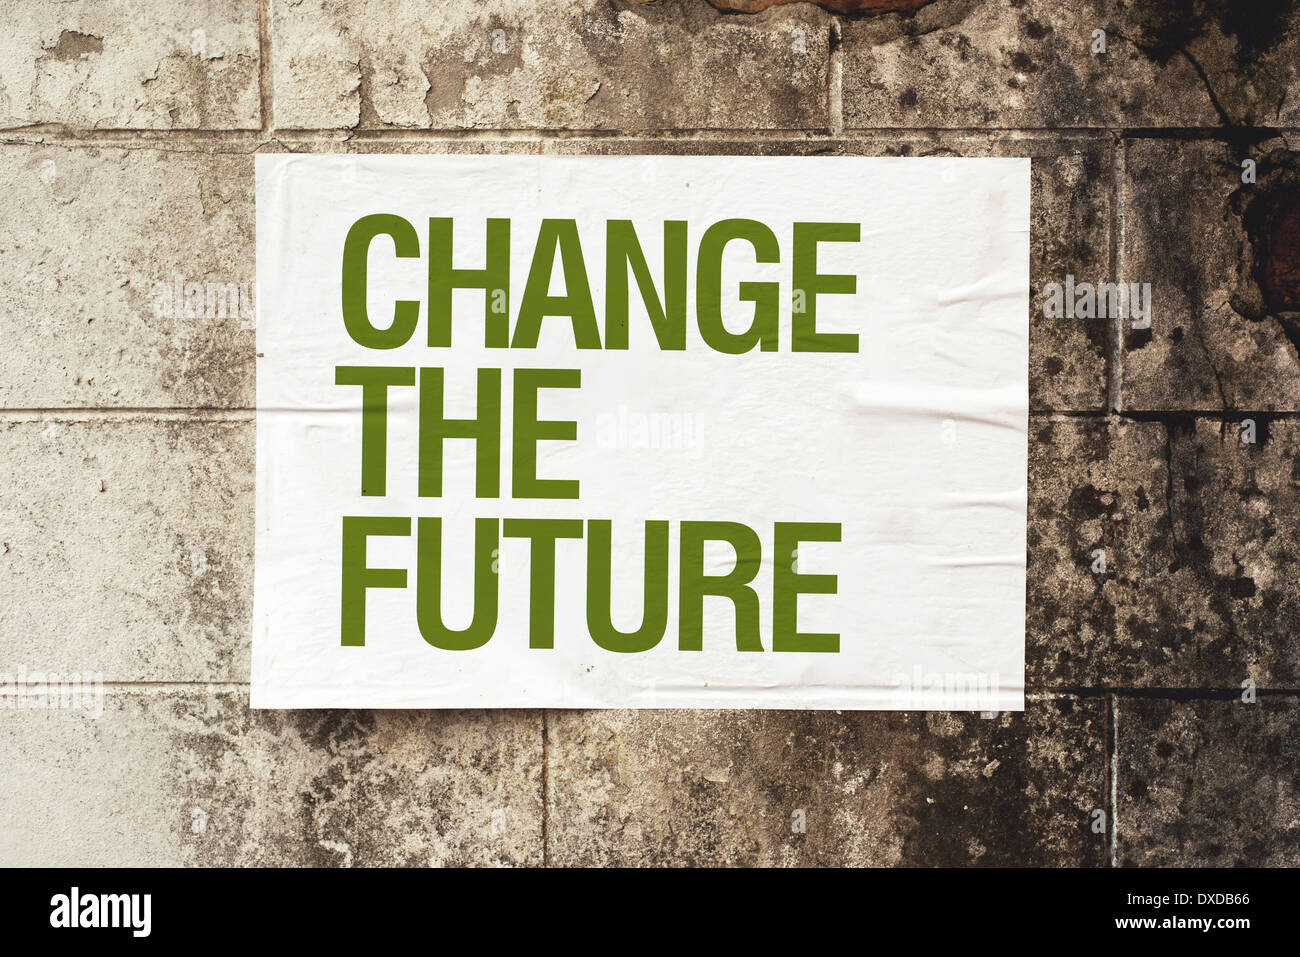 Change the Future poster on grunge wall. Conceptual image. - Stock Image